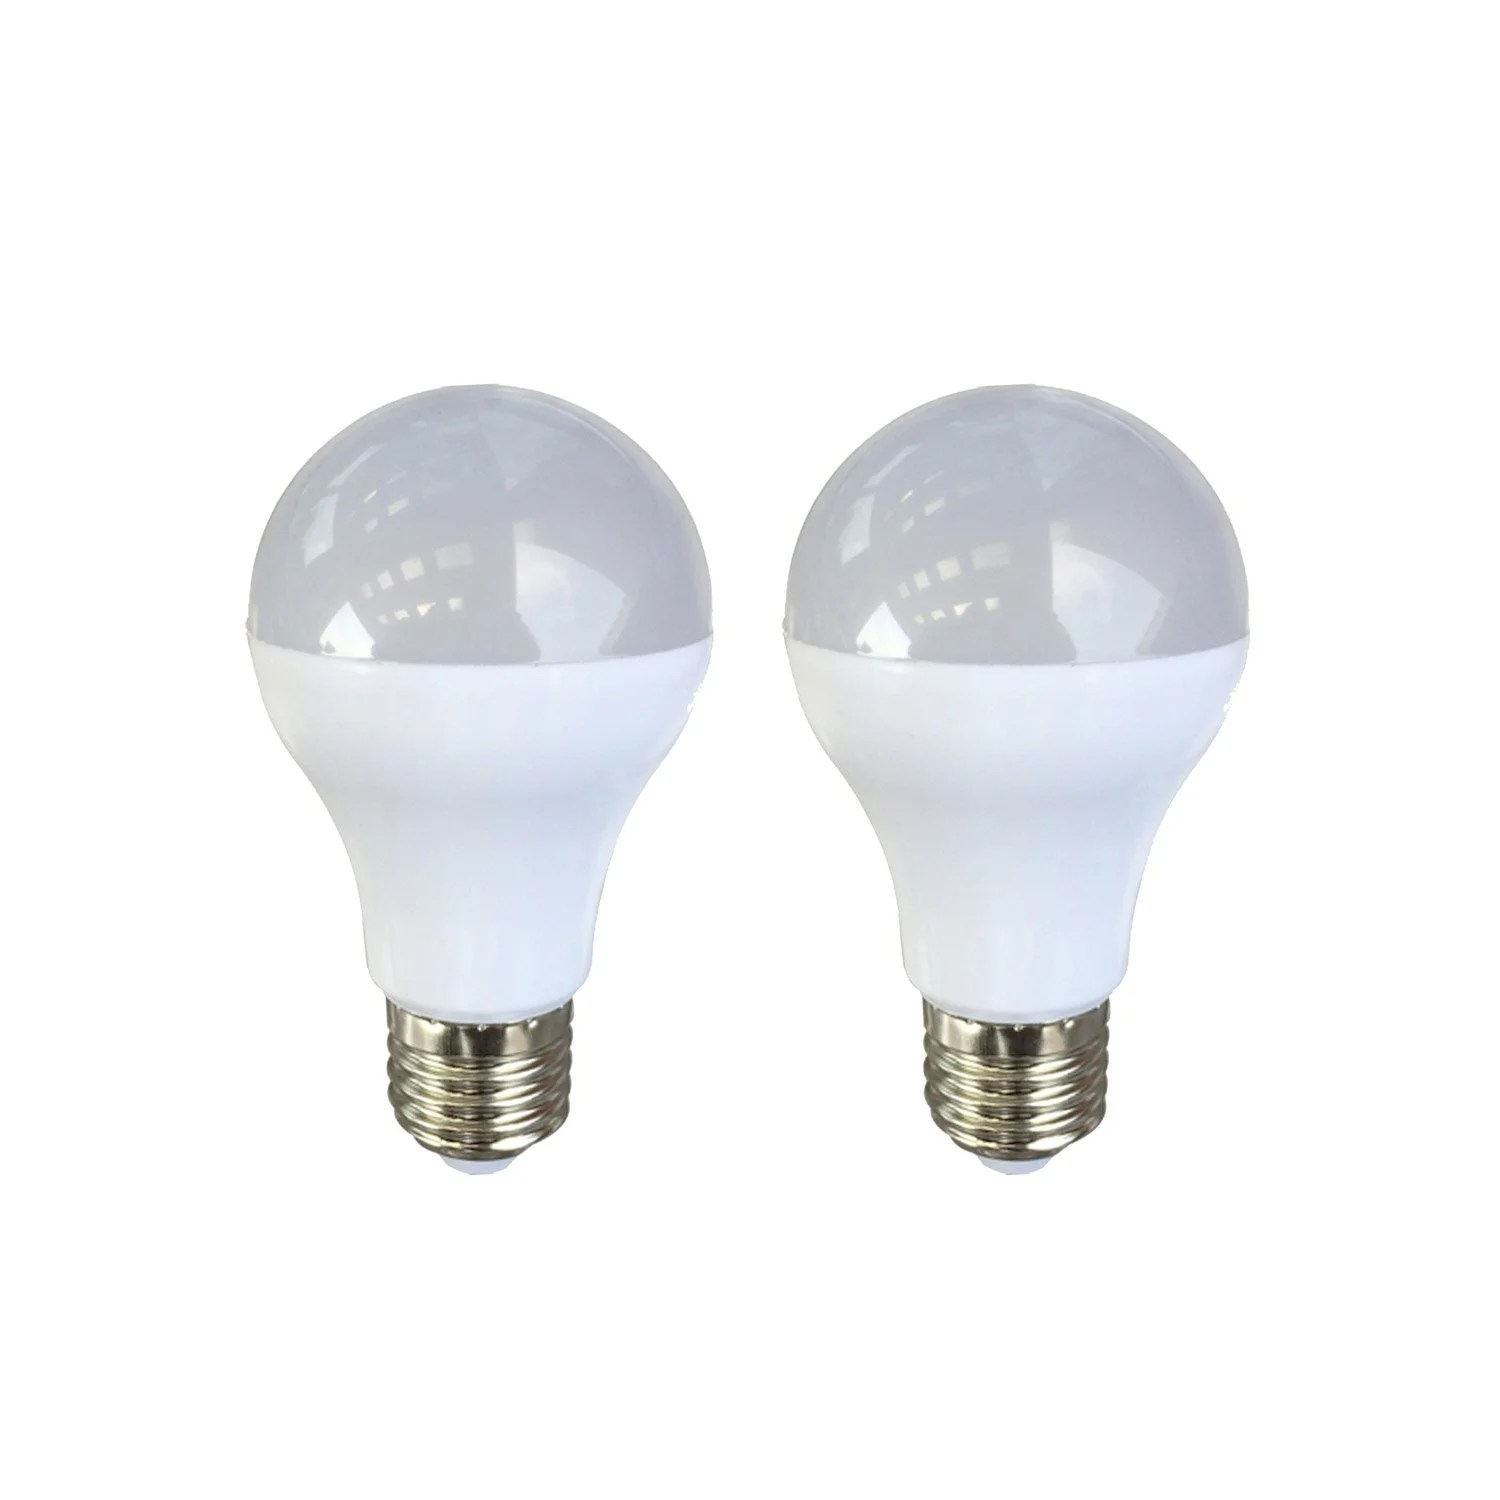 Leroy Merlin Ampoule E27 Lot De 2 Ampoules Standards Led 9w 806lm équiv 60w E27